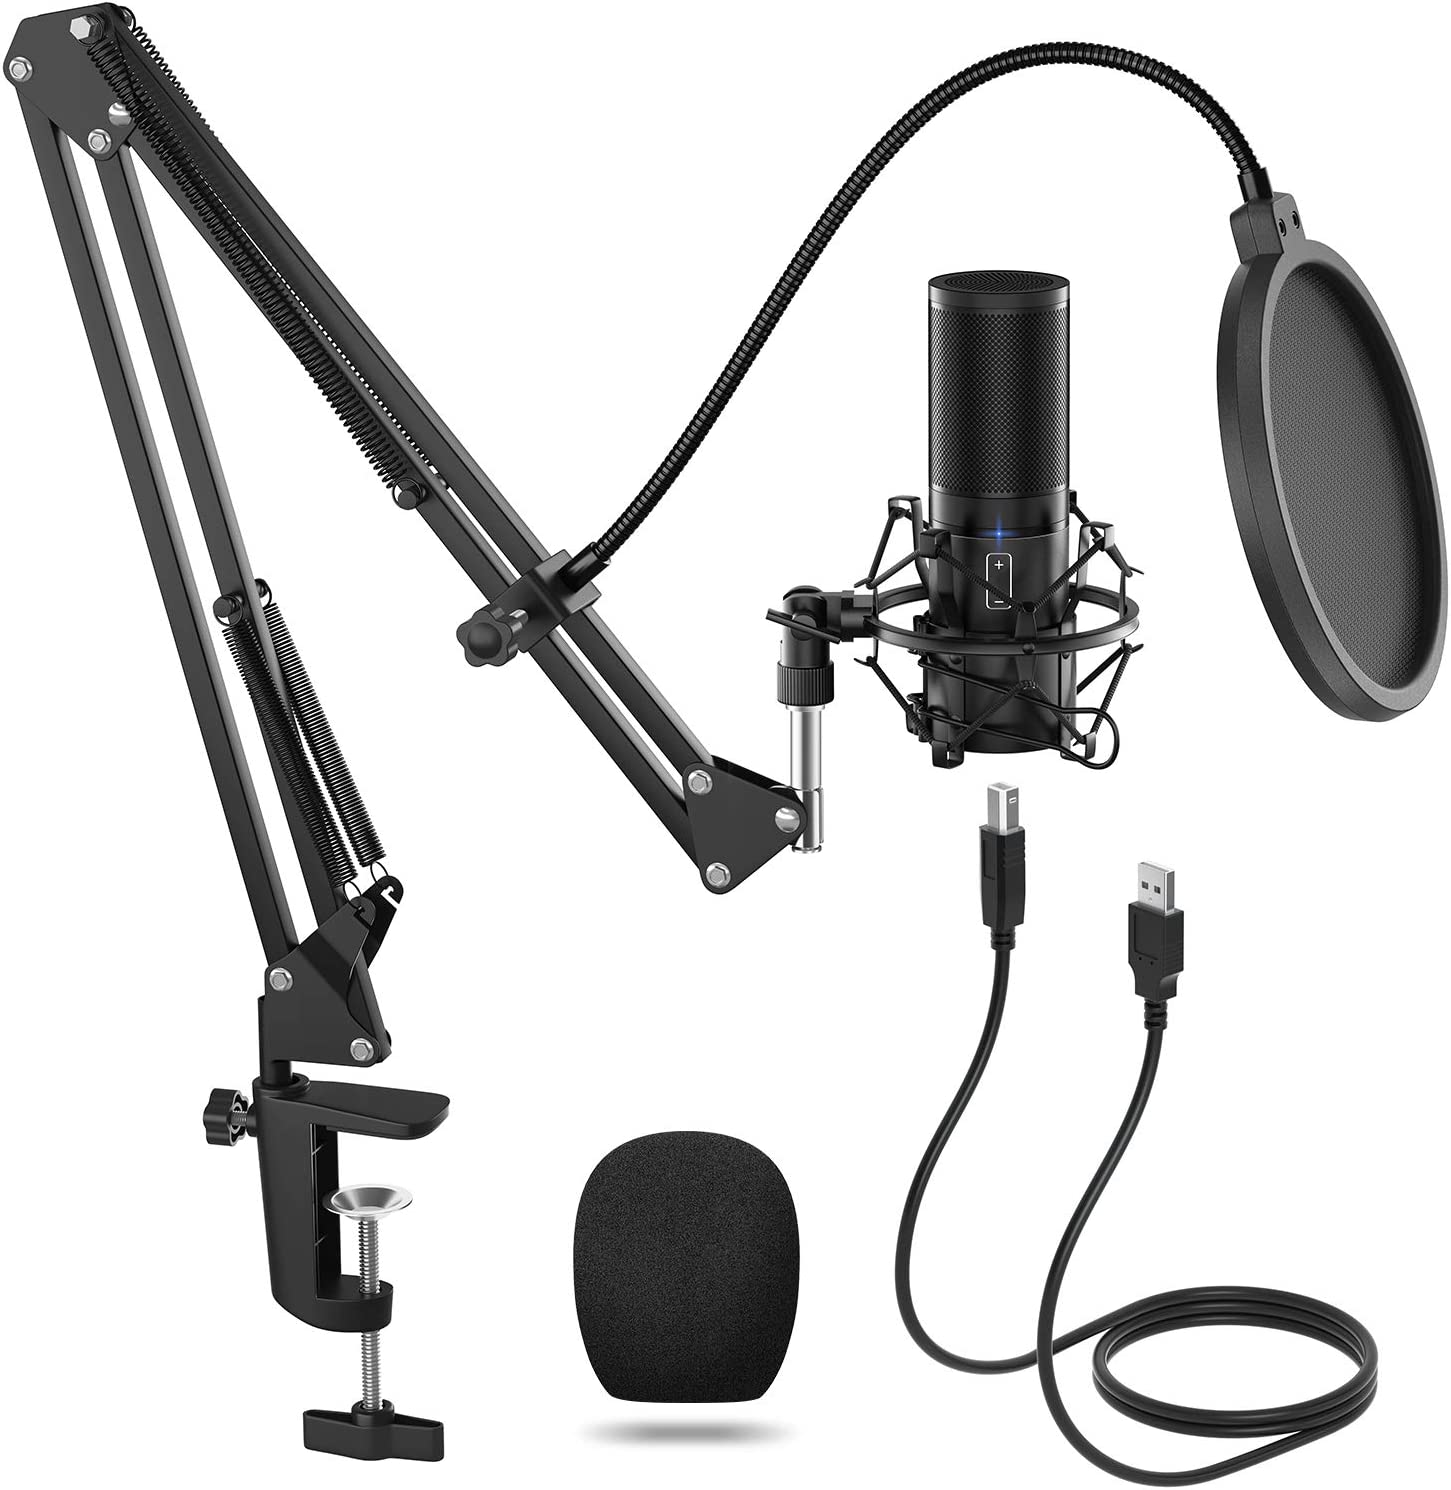 Amazon Com Tonor Usb Microphone Kit Streaming Podcast Pc Condenser Computer Mic For Gaming Youtube Video Recording Music Voice Over Studio Mic Bundle With Adjustment Arm Stand Q9